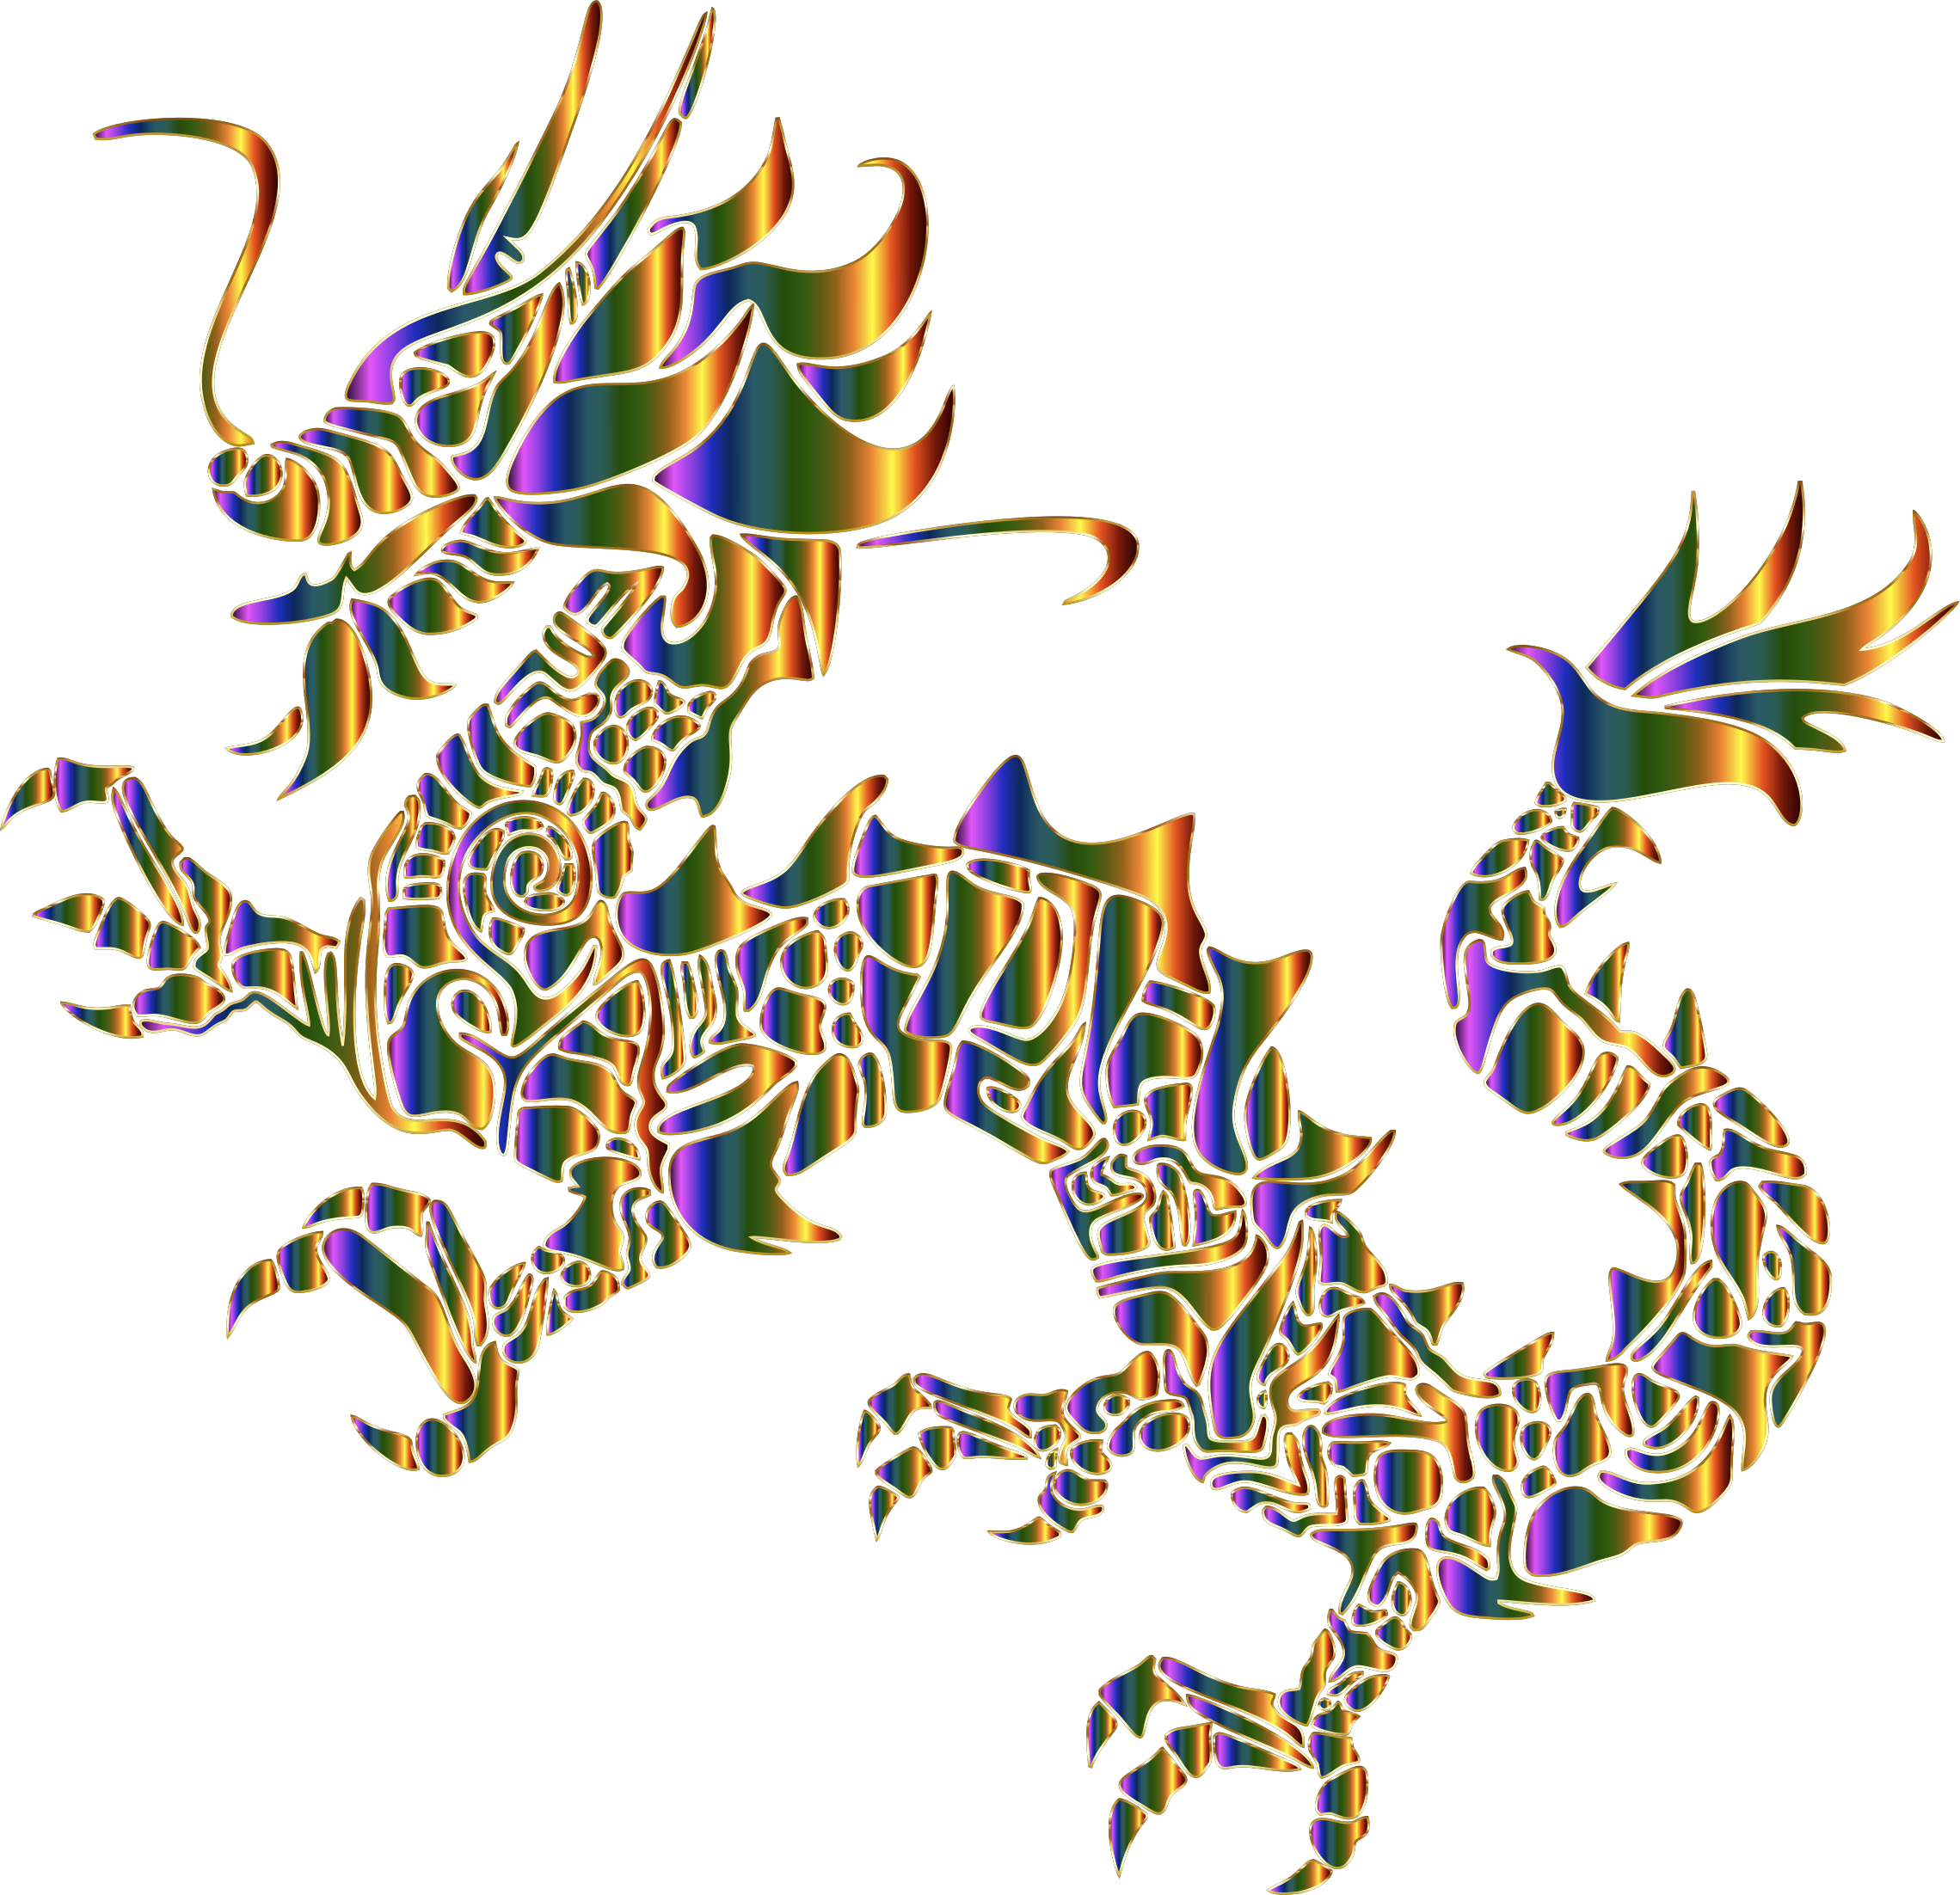 Chromatic Tribal Asian Dragon Silhouette No Background by GDJ